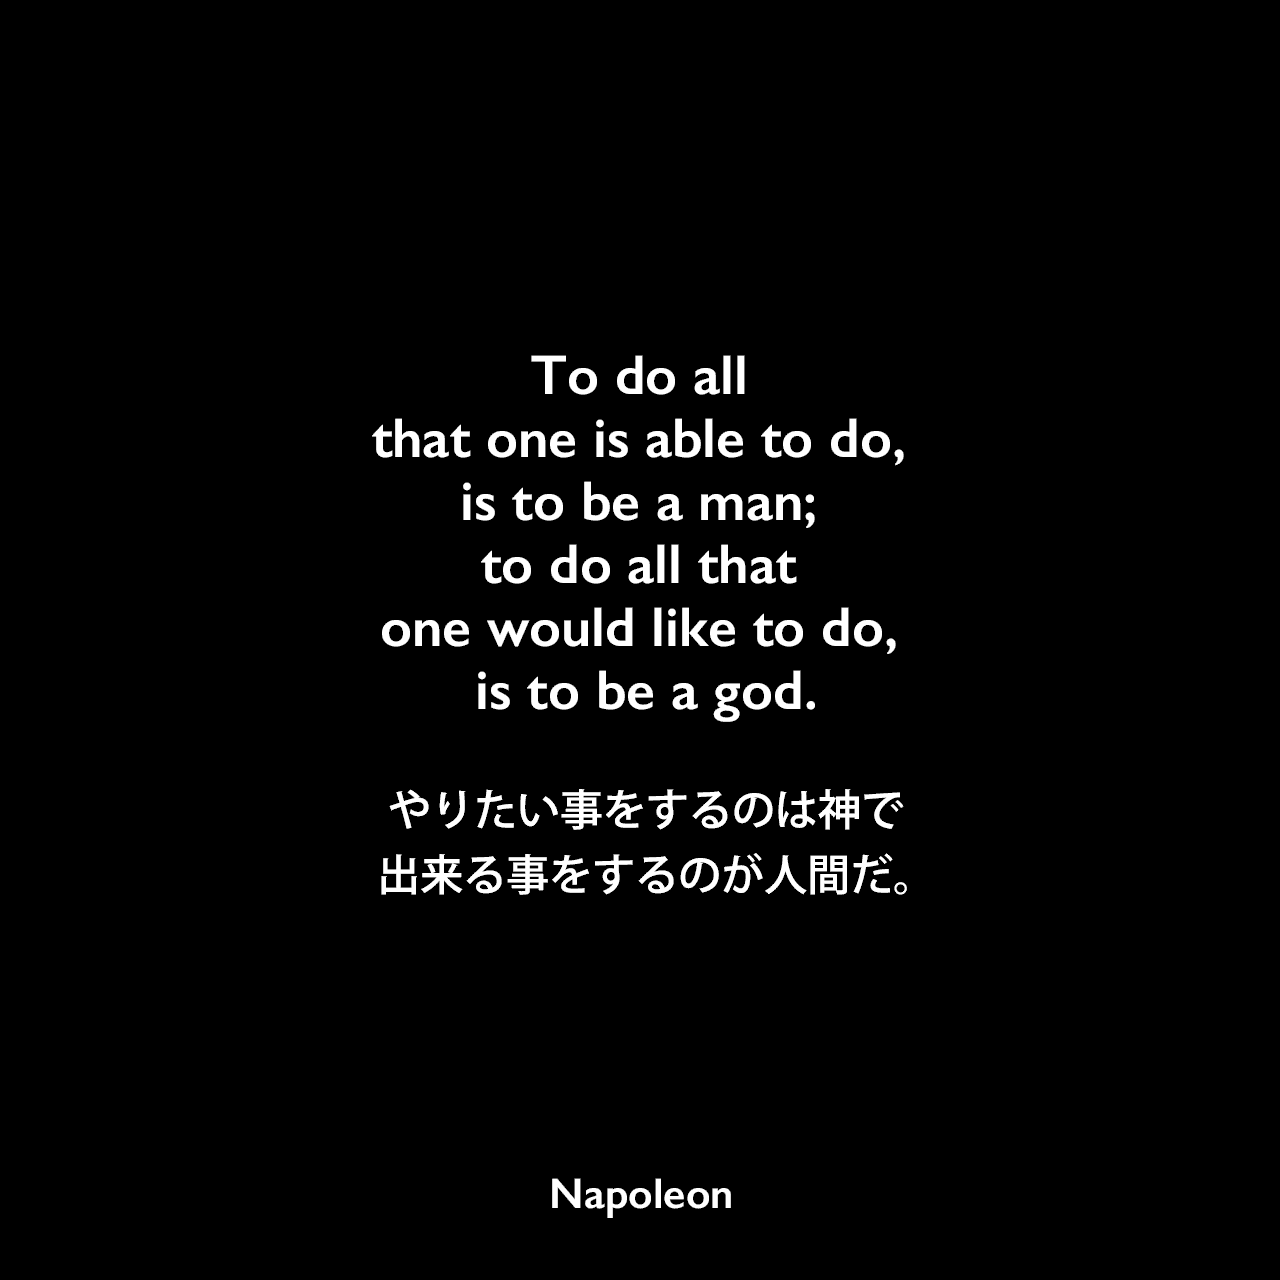 To do all that one is able to do, is to be a man; to do all that one would like to do, is to be a god.やりたい事をするのは神で、出来る事をするのが人間だ。- 「Napoleon in his own words」よりNapoleon